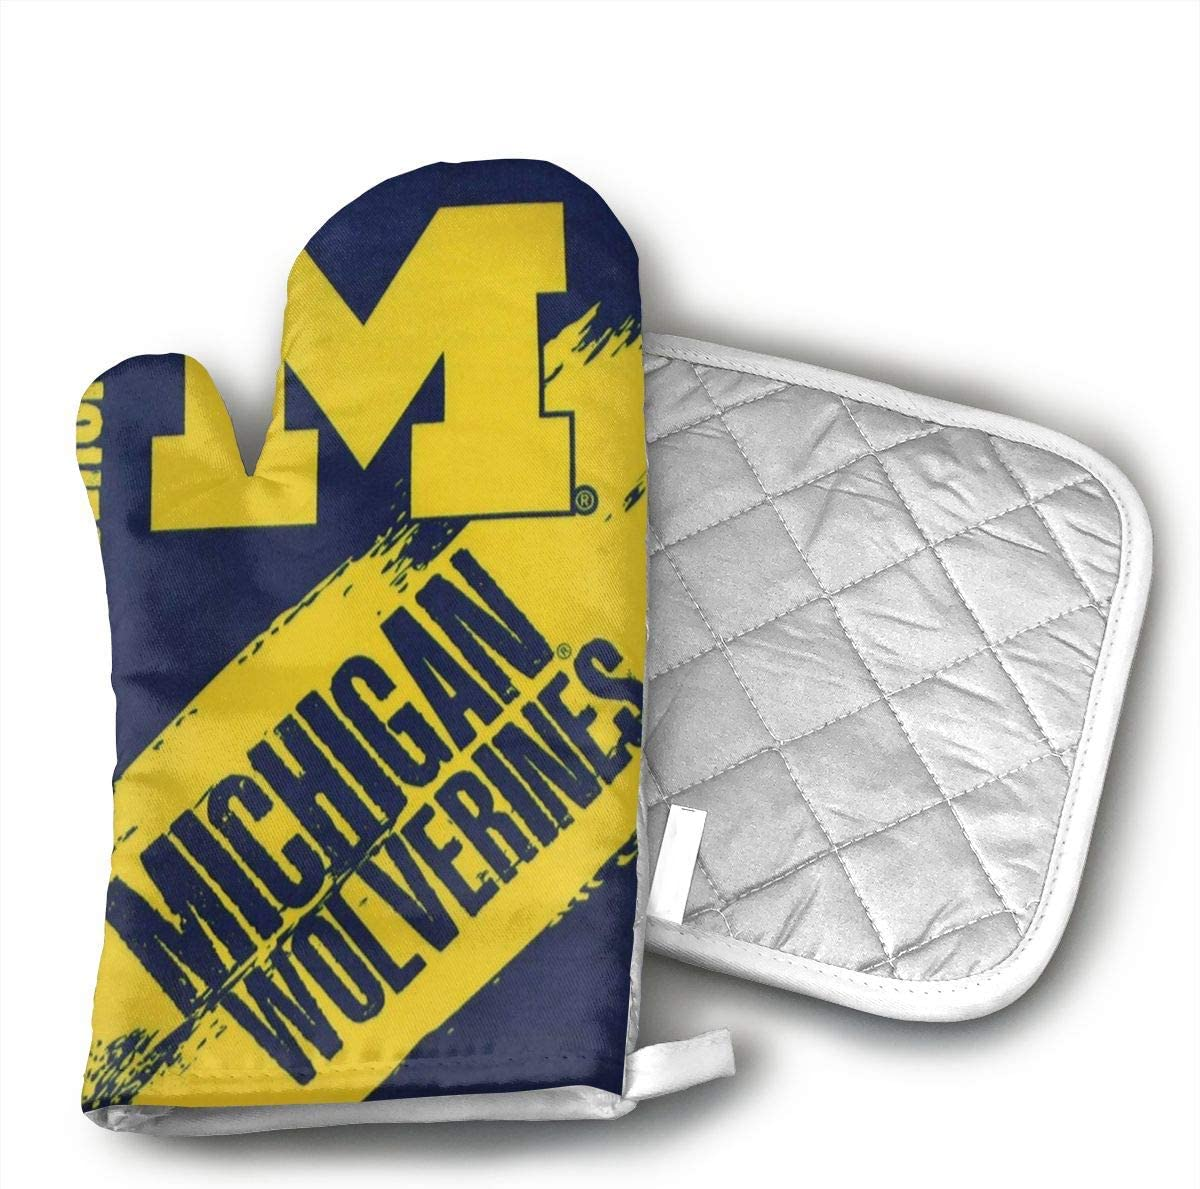 LZMBH Michigan Wolverines Oven Mitts,Heat Resistant Cotton Infill,450 F Degrees Heat Resistant